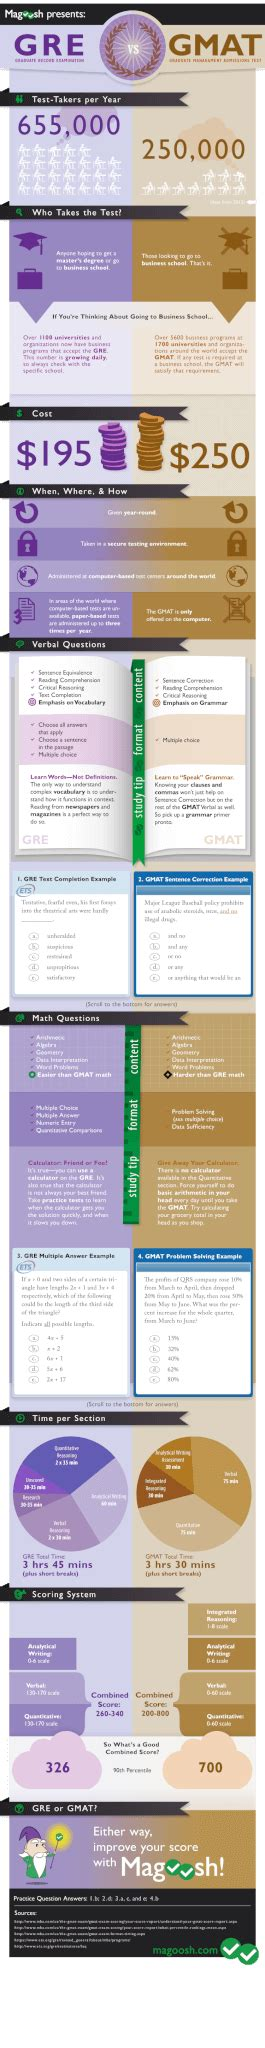 Hec Mba Toefl Code by Gre Vs Gmat Magoosh Gre